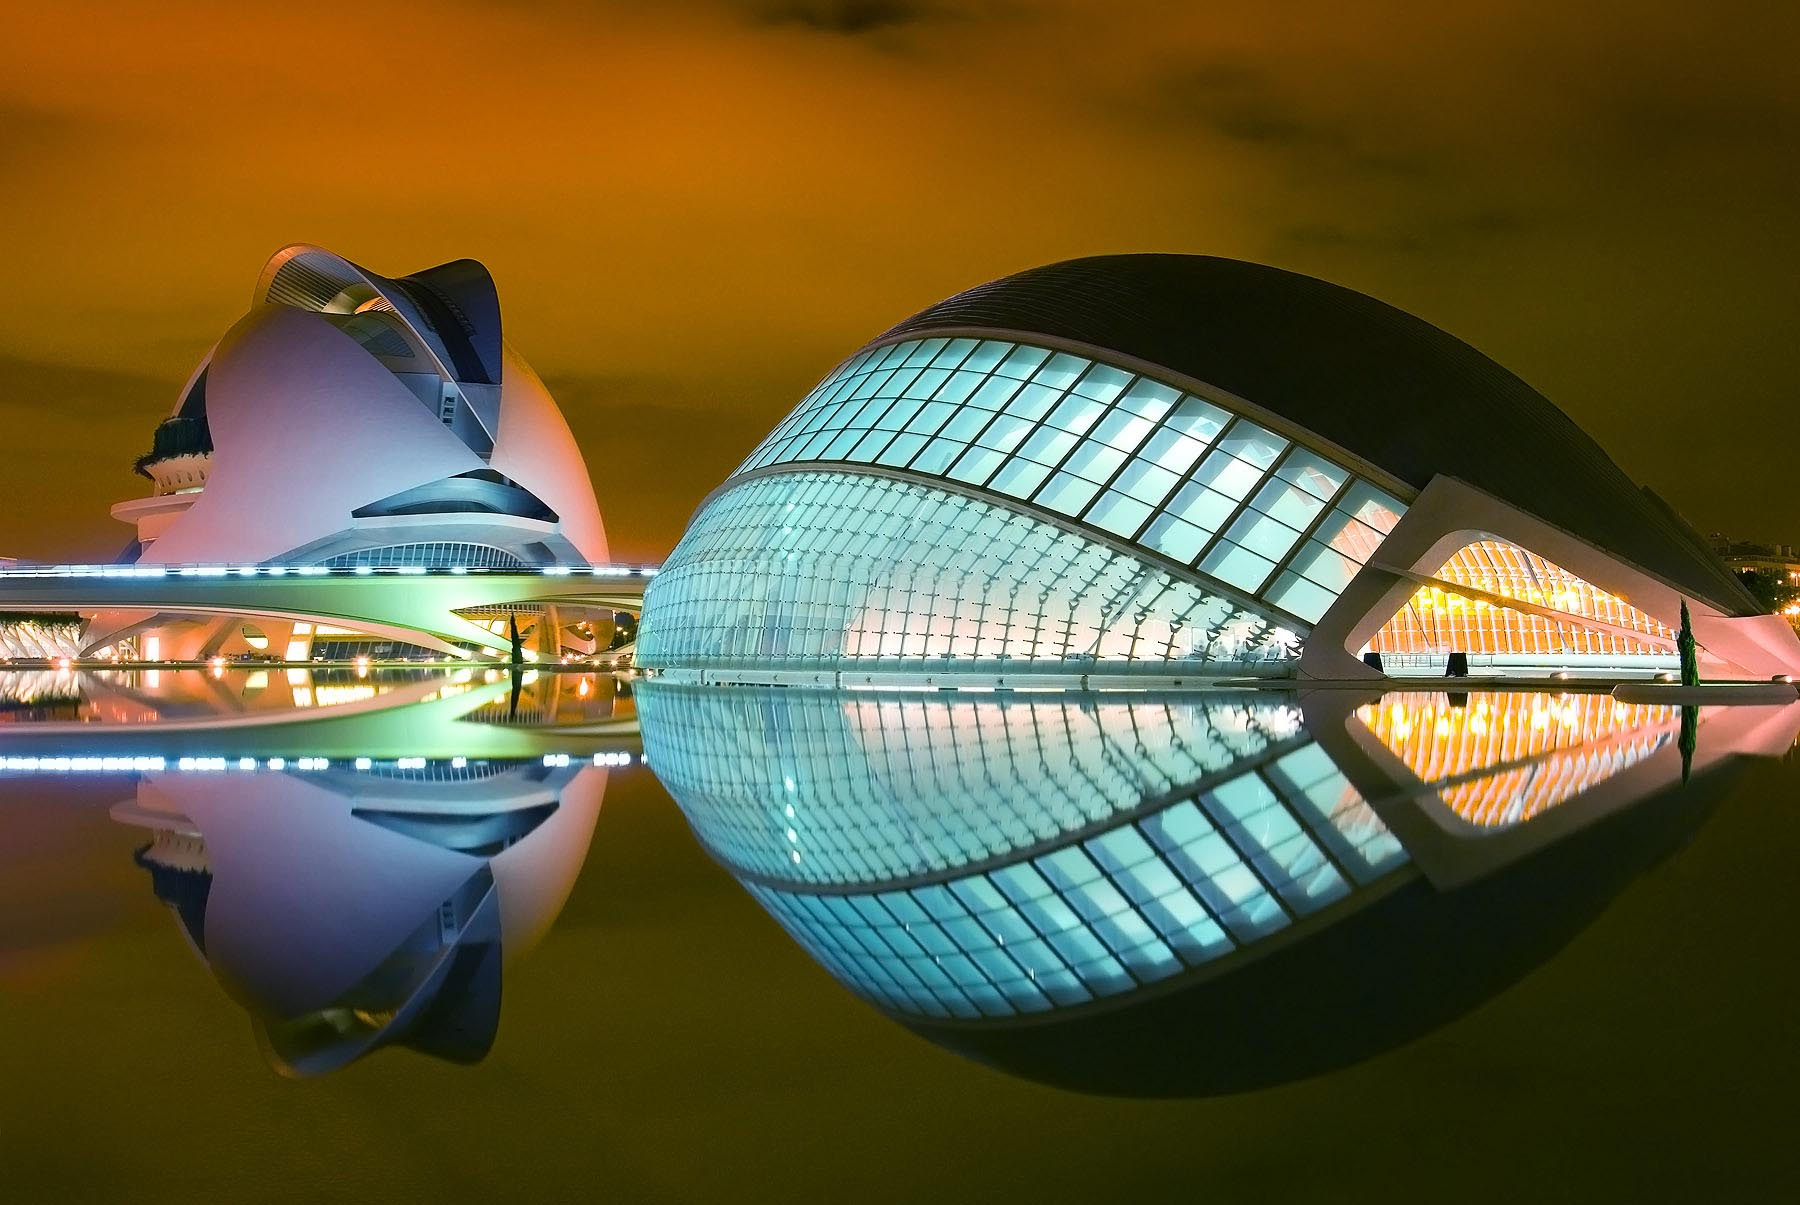 city-of-arts-sciences-valencia-modern-architecture-spain-15